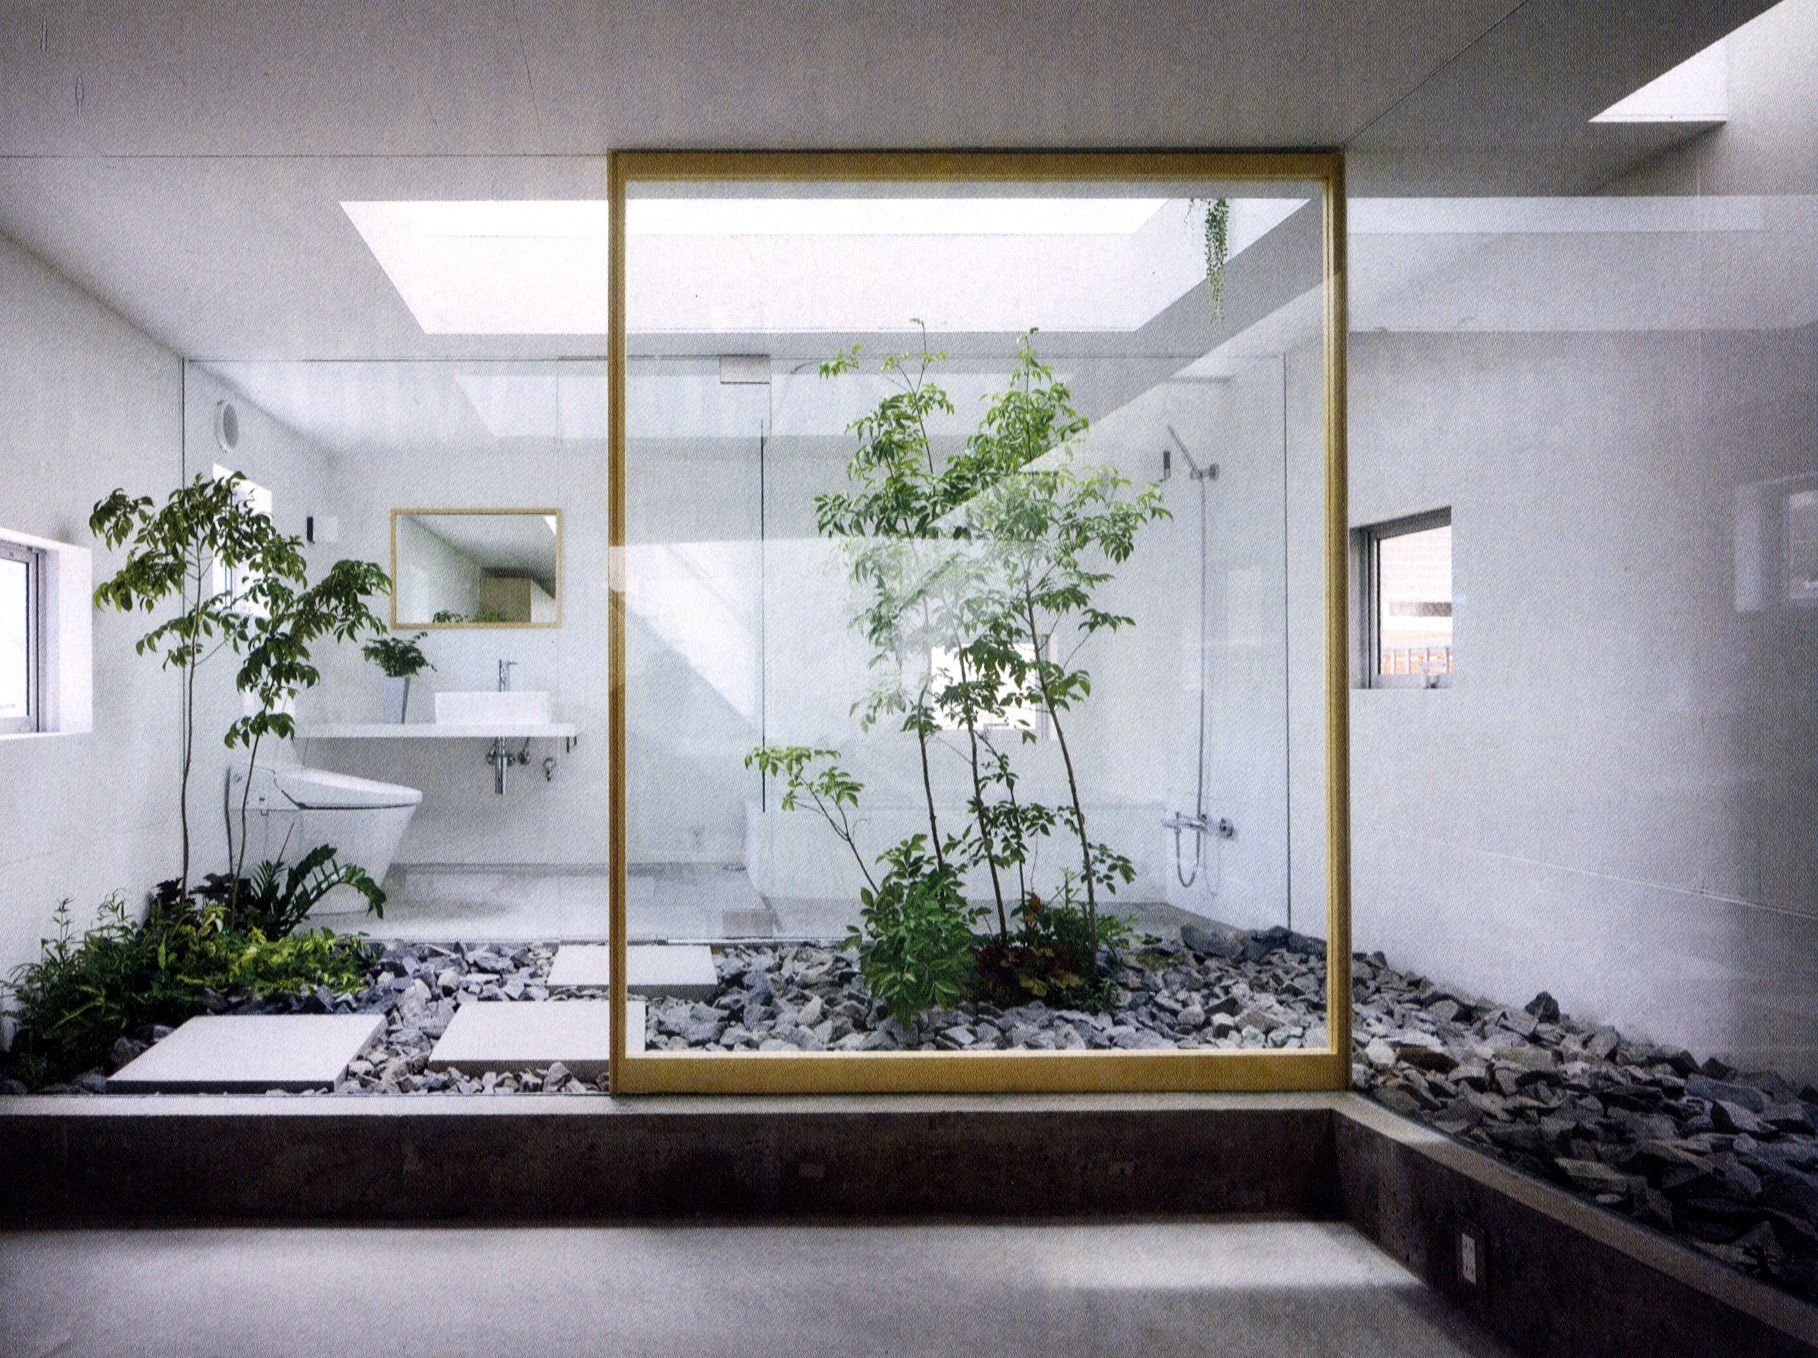 Zen Garden Bathroom | For The Home // Design | Japanese Bathroom regarding Zen Garden Interior Design